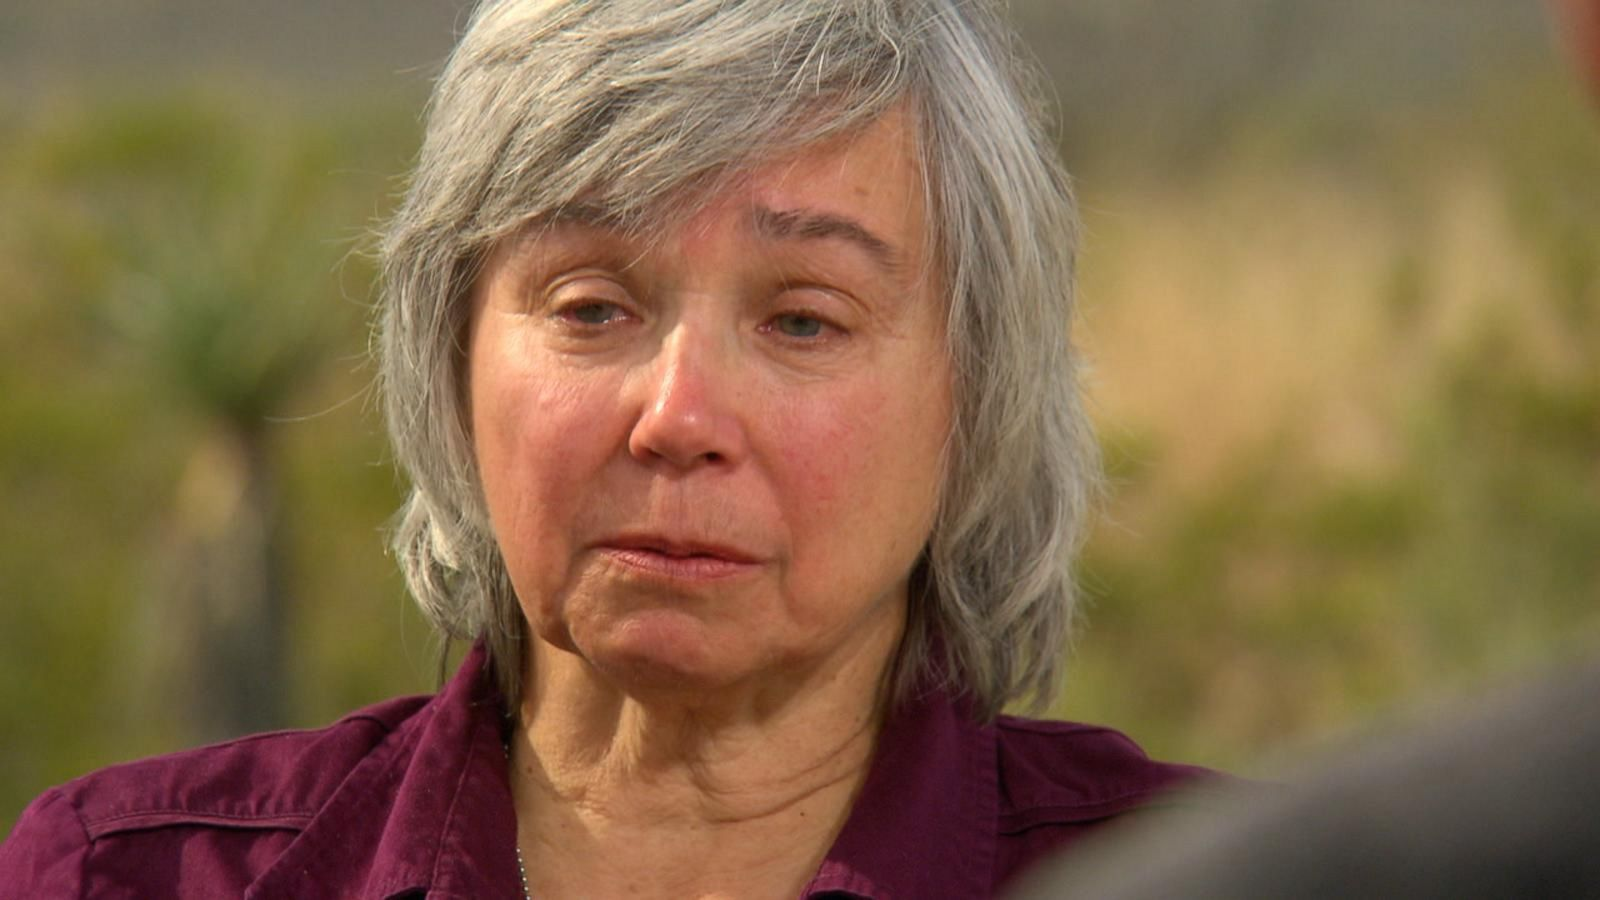 Unabomber Ted Kaczynskis Brother Sister In Law Recall Turning Him In To Fbi Abc News